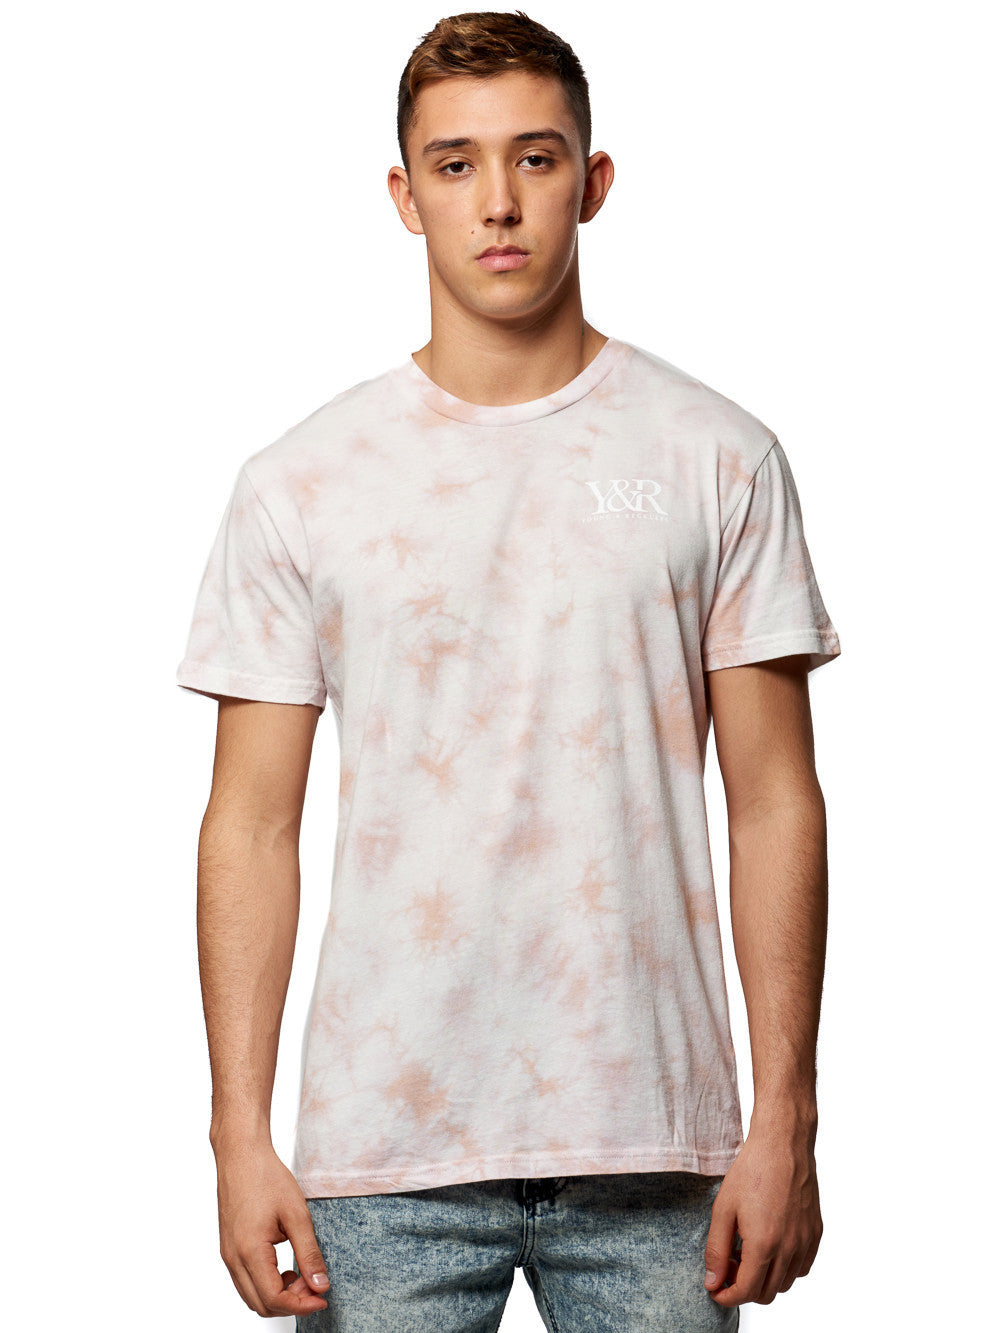 Young and Reckless Mens - Tees - Graphic Tee Straight Up Tee- Crush Pink